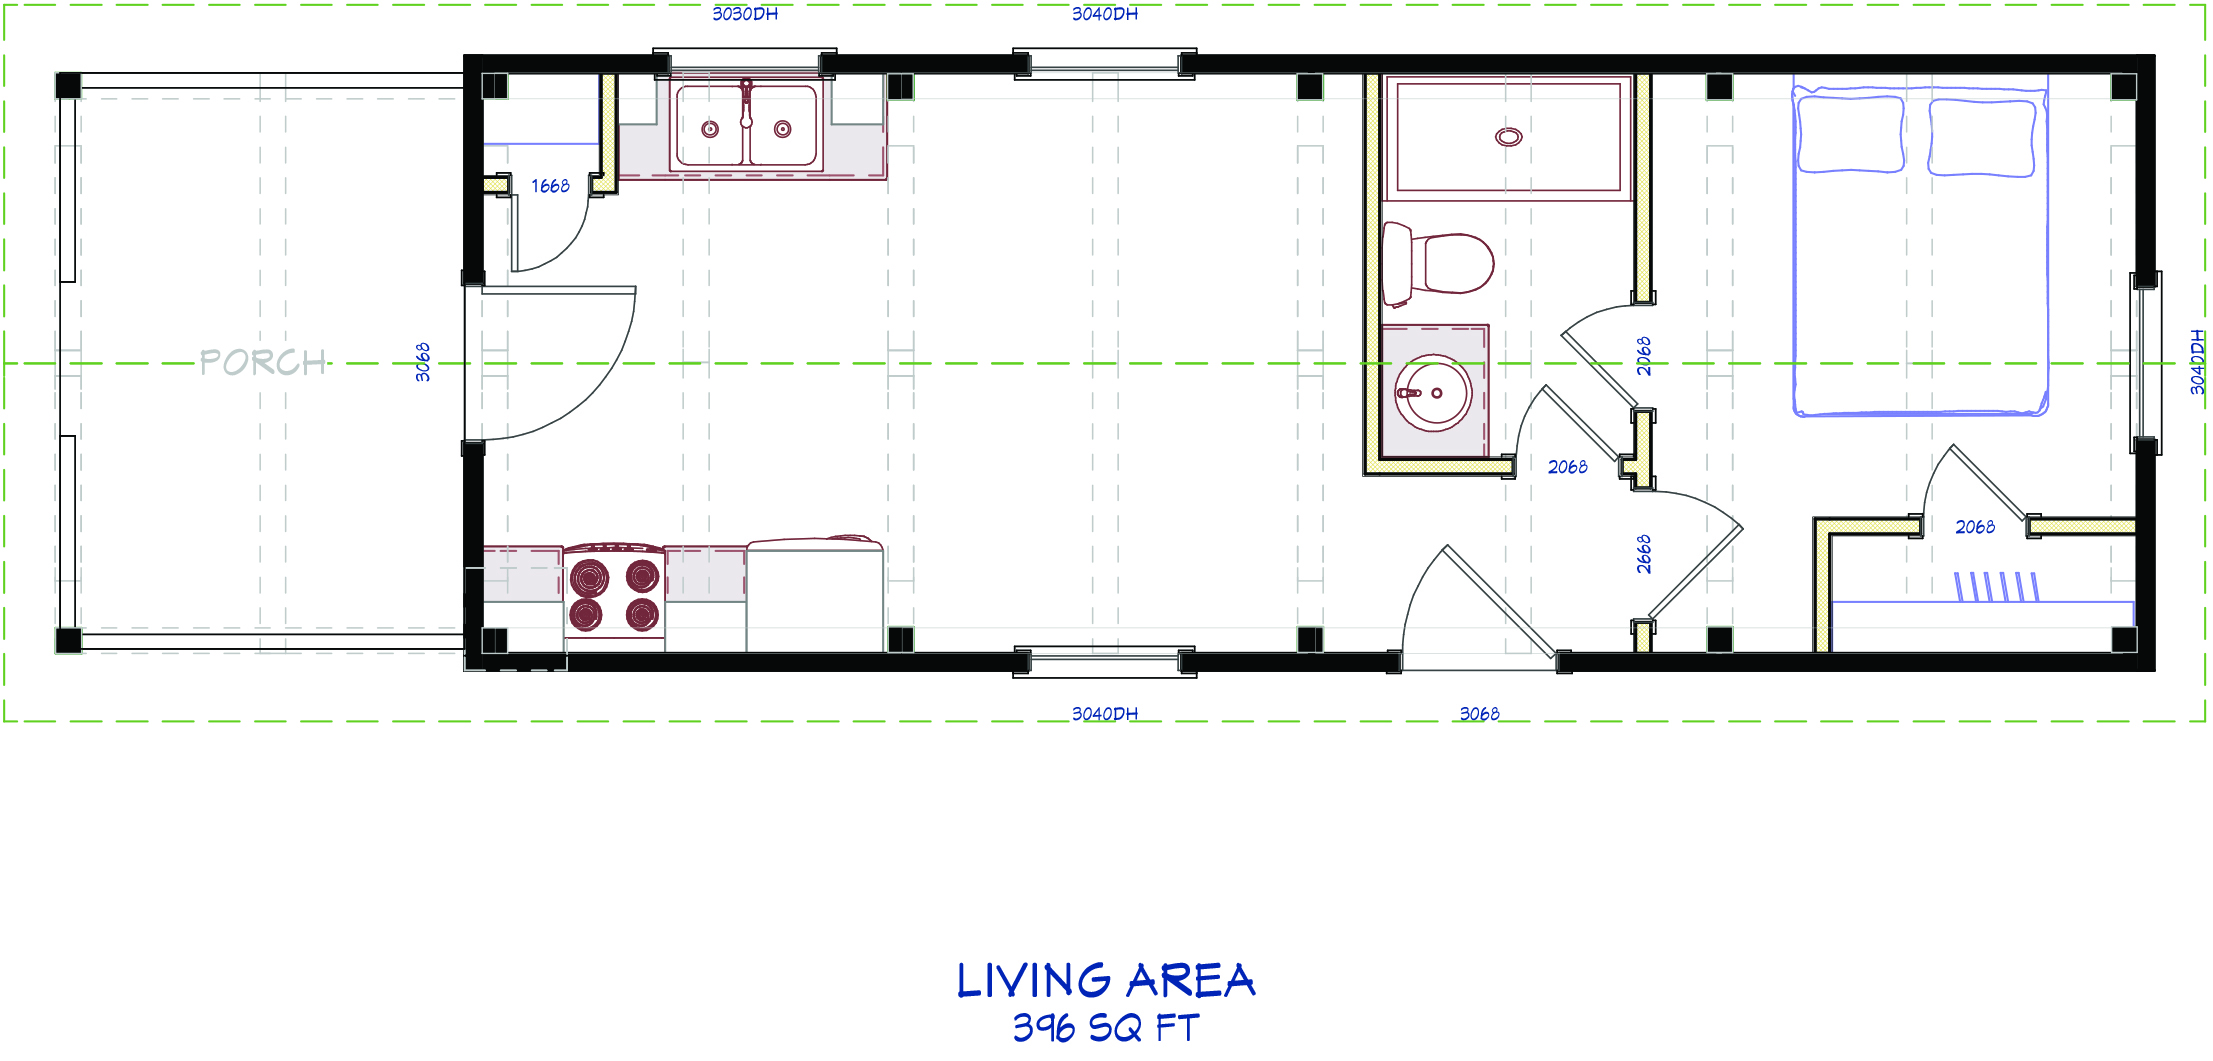 Hearthstone 39 s new tiny home design hearthstone homes for Hearthstone homes floor plans